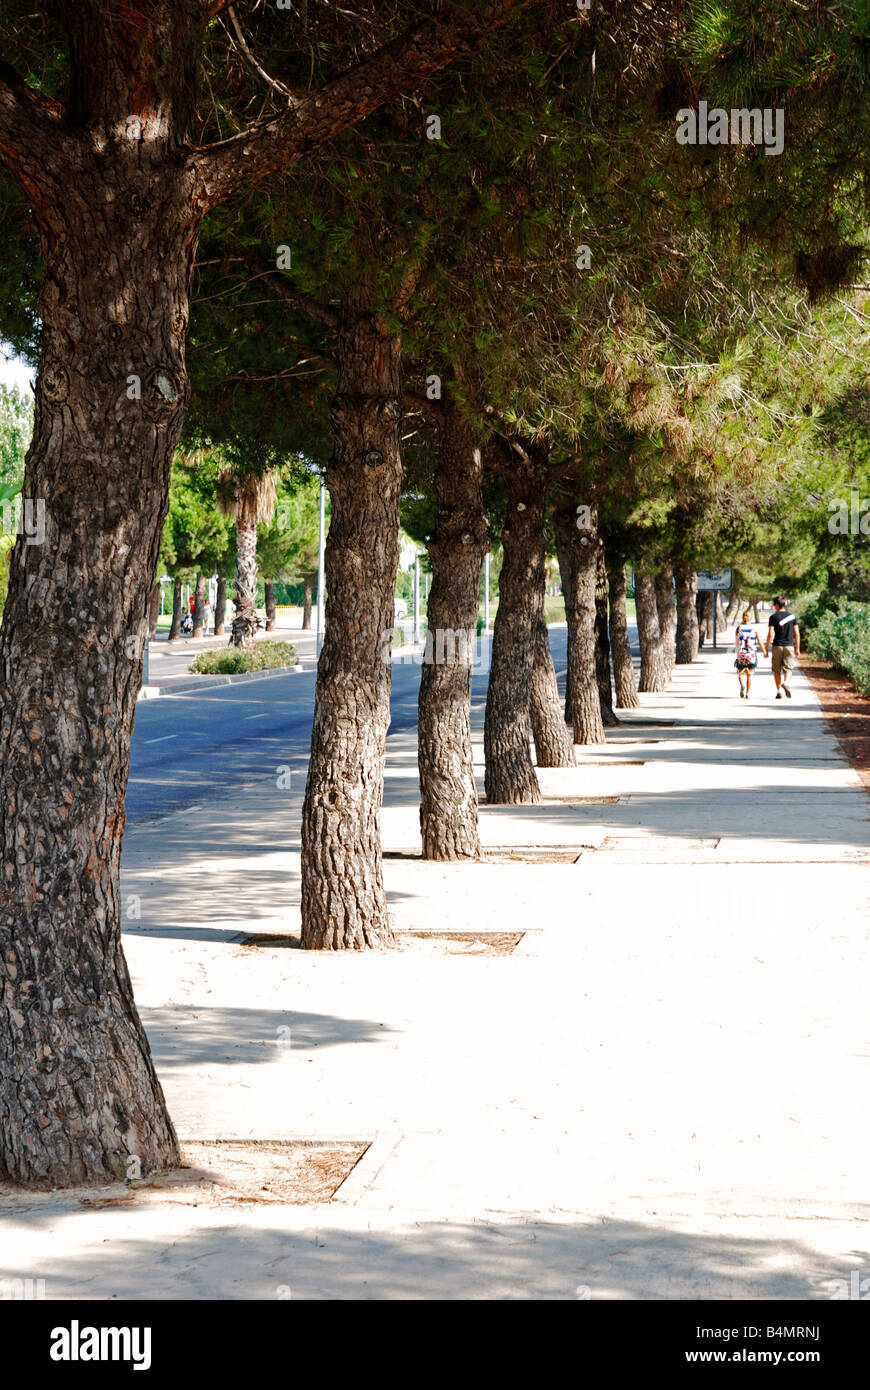 a row of pine trees on the pavement in salou,spain, gives some shade for pedestrians - Stock Image